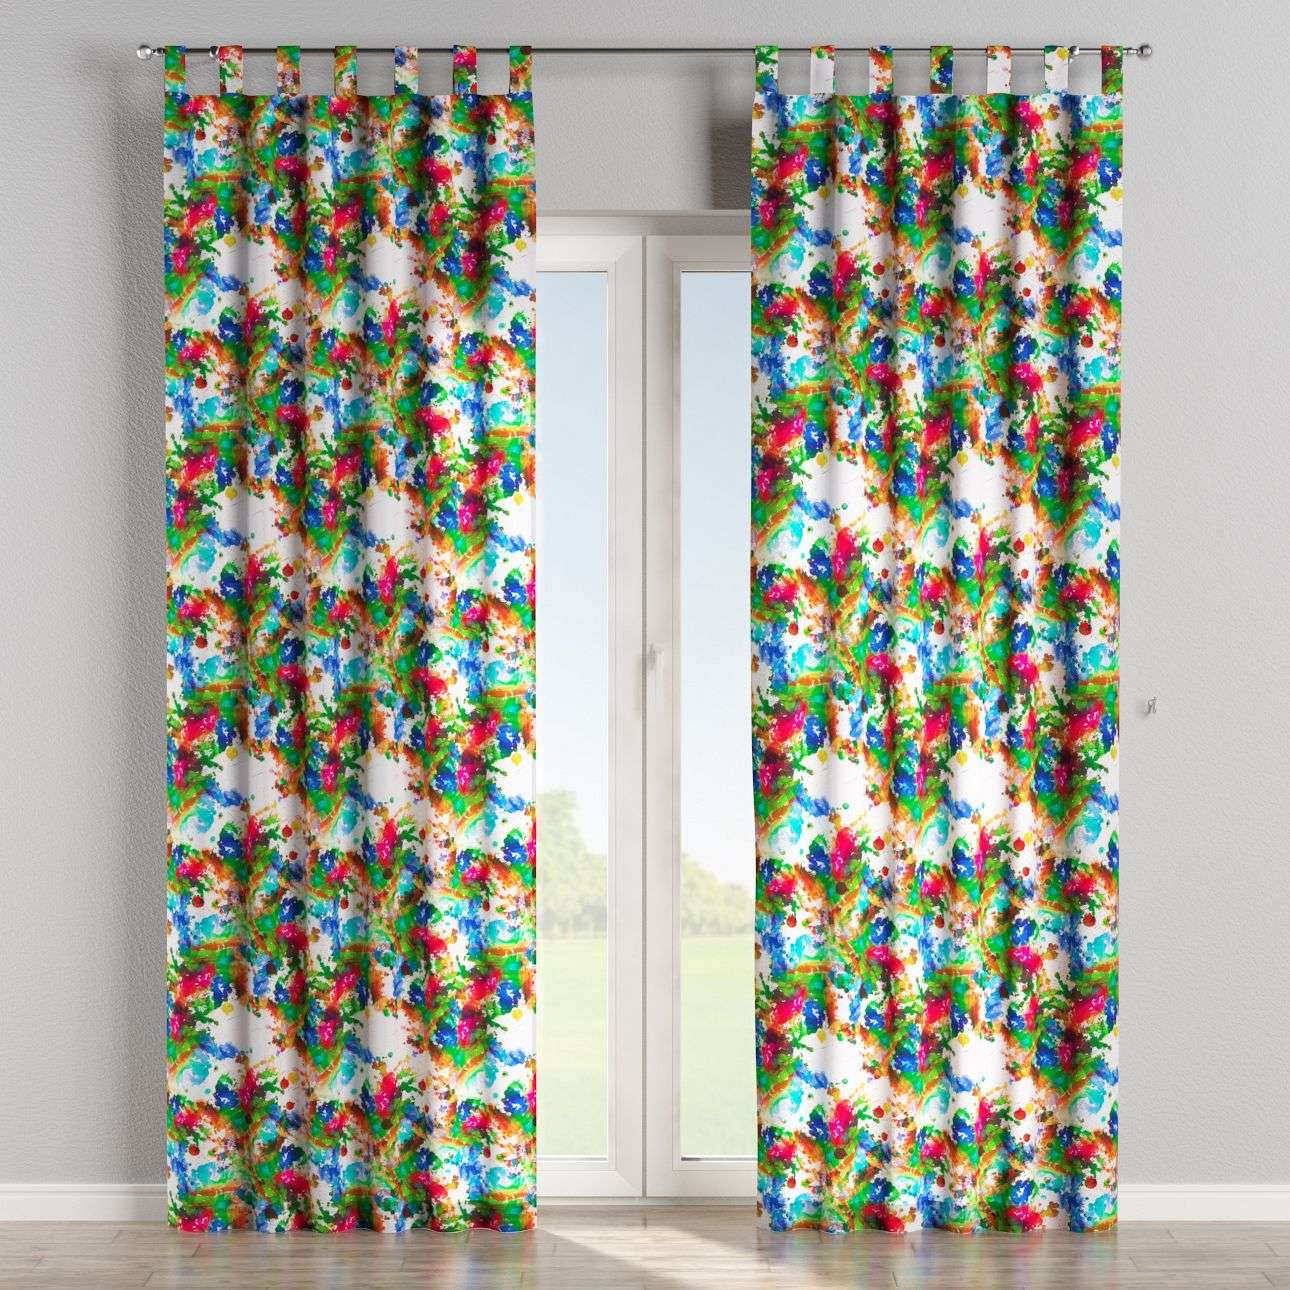 Tab top curtains 130 x 260 cm (51 x 102 inch) in collection New Art, fabric: 140-23